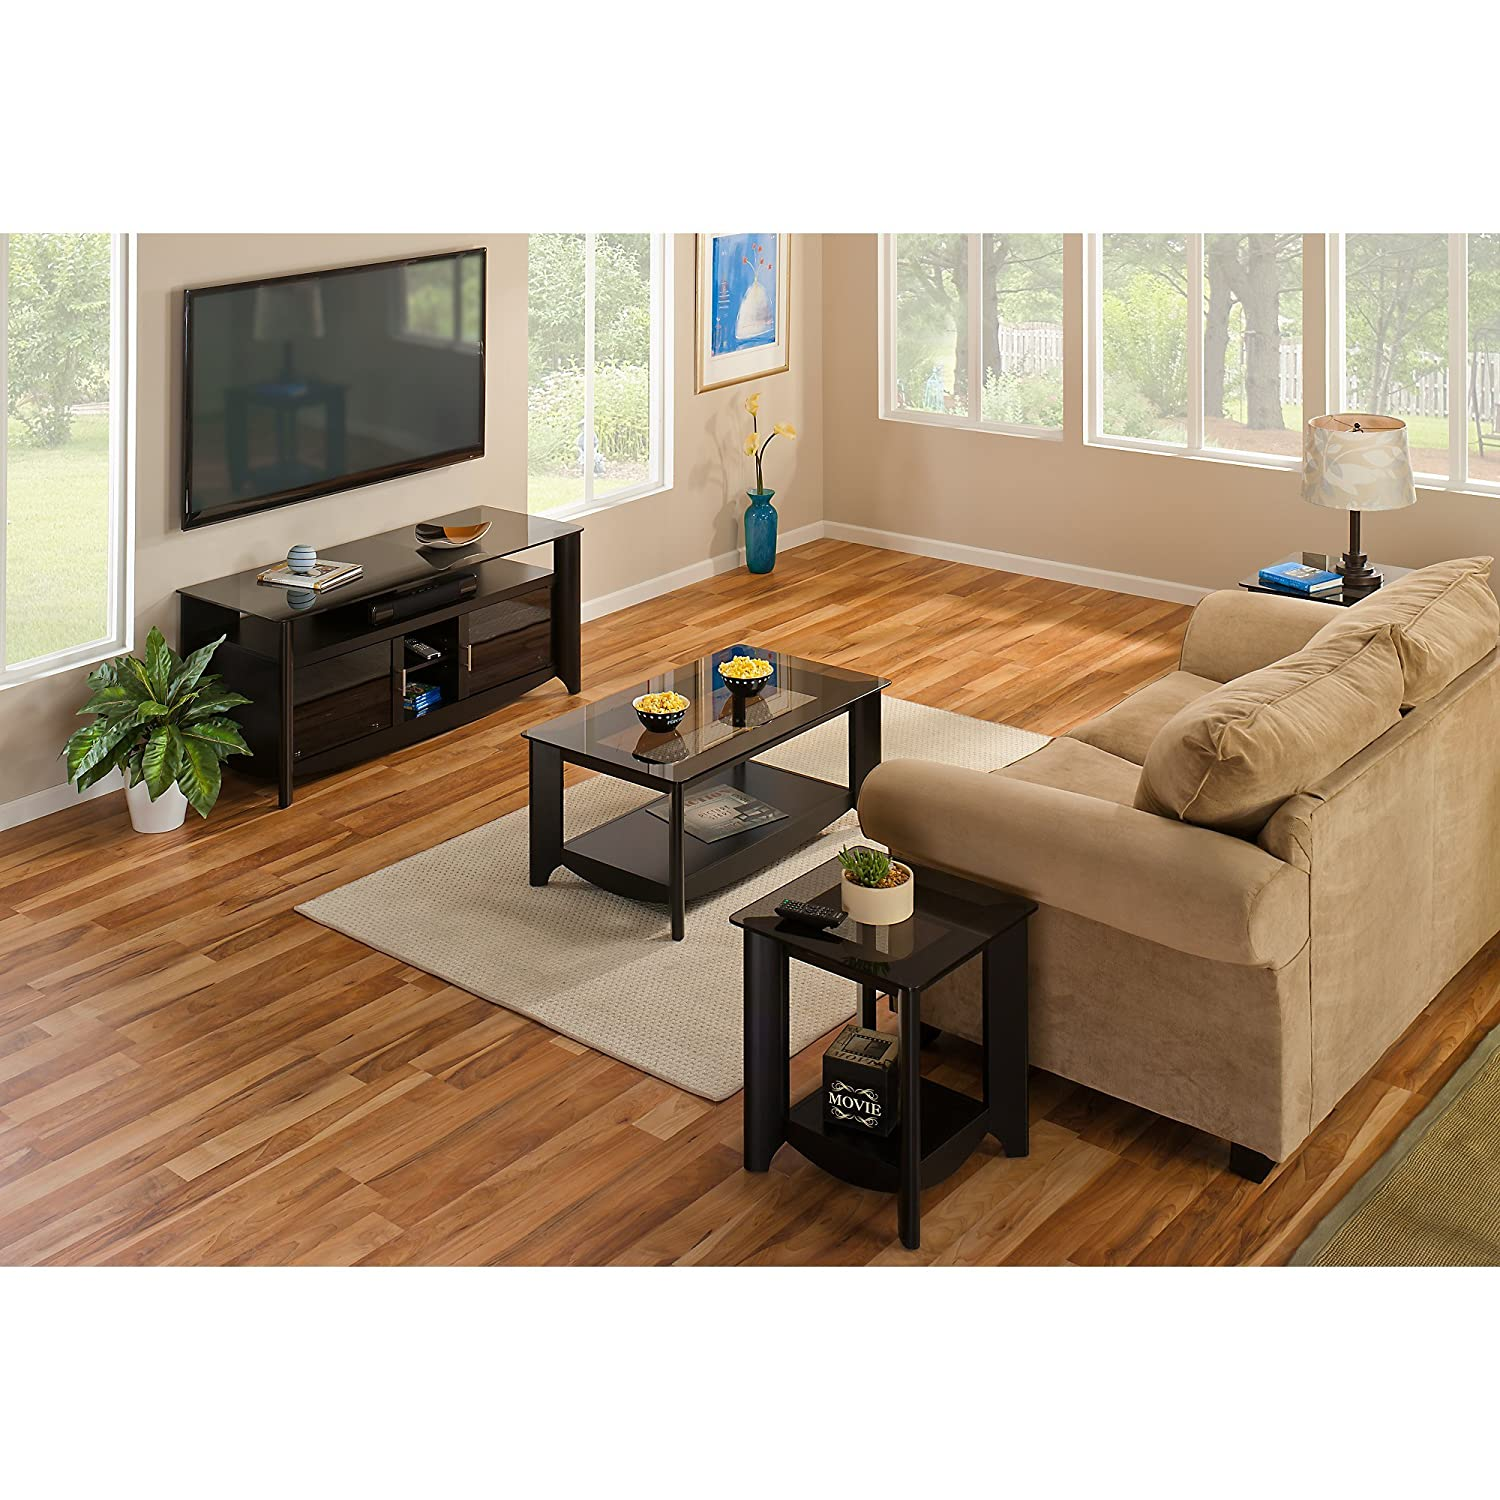 Amazon Aero 56 Inch TV Stand and Coffee Table with End Tables